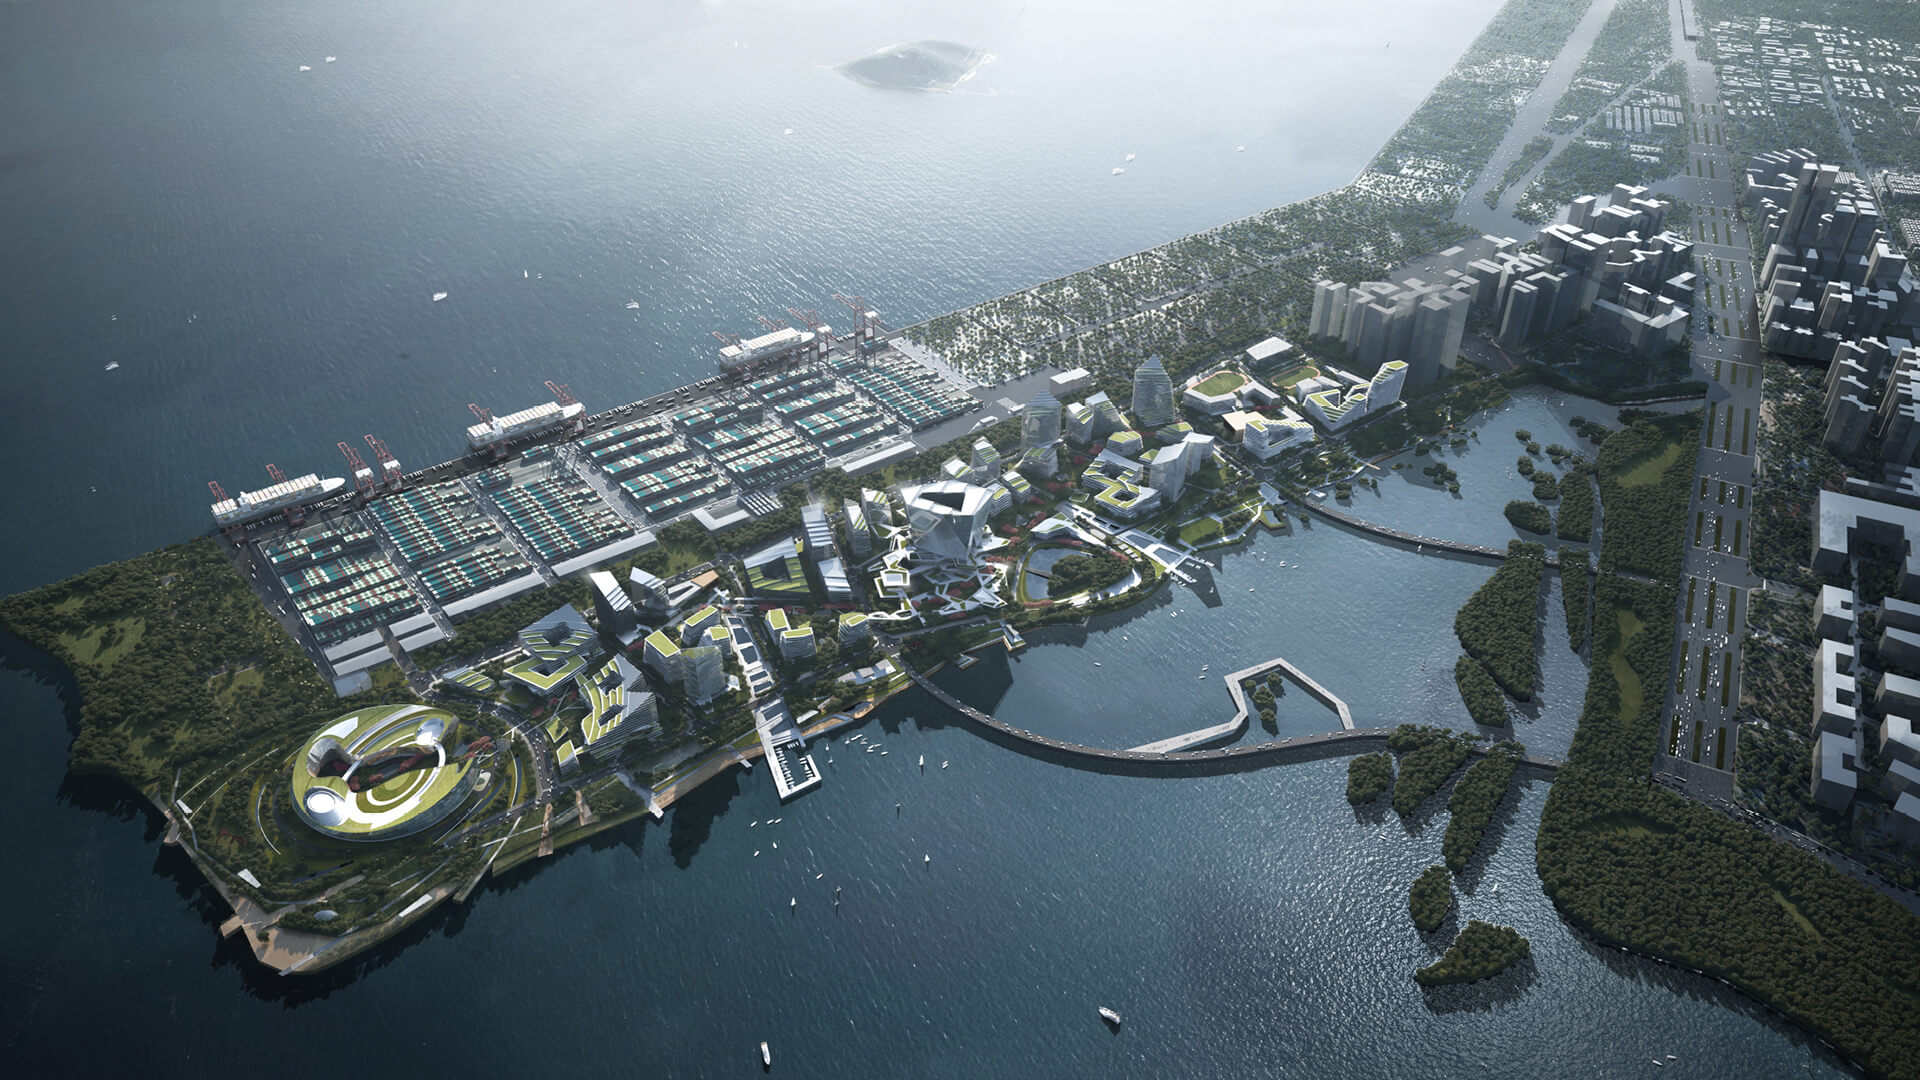 Net City in Shenzhen, China, for tech firm Tencent to be designed by NBBJ | Net City by Tencent | NBBJ | STIRworld